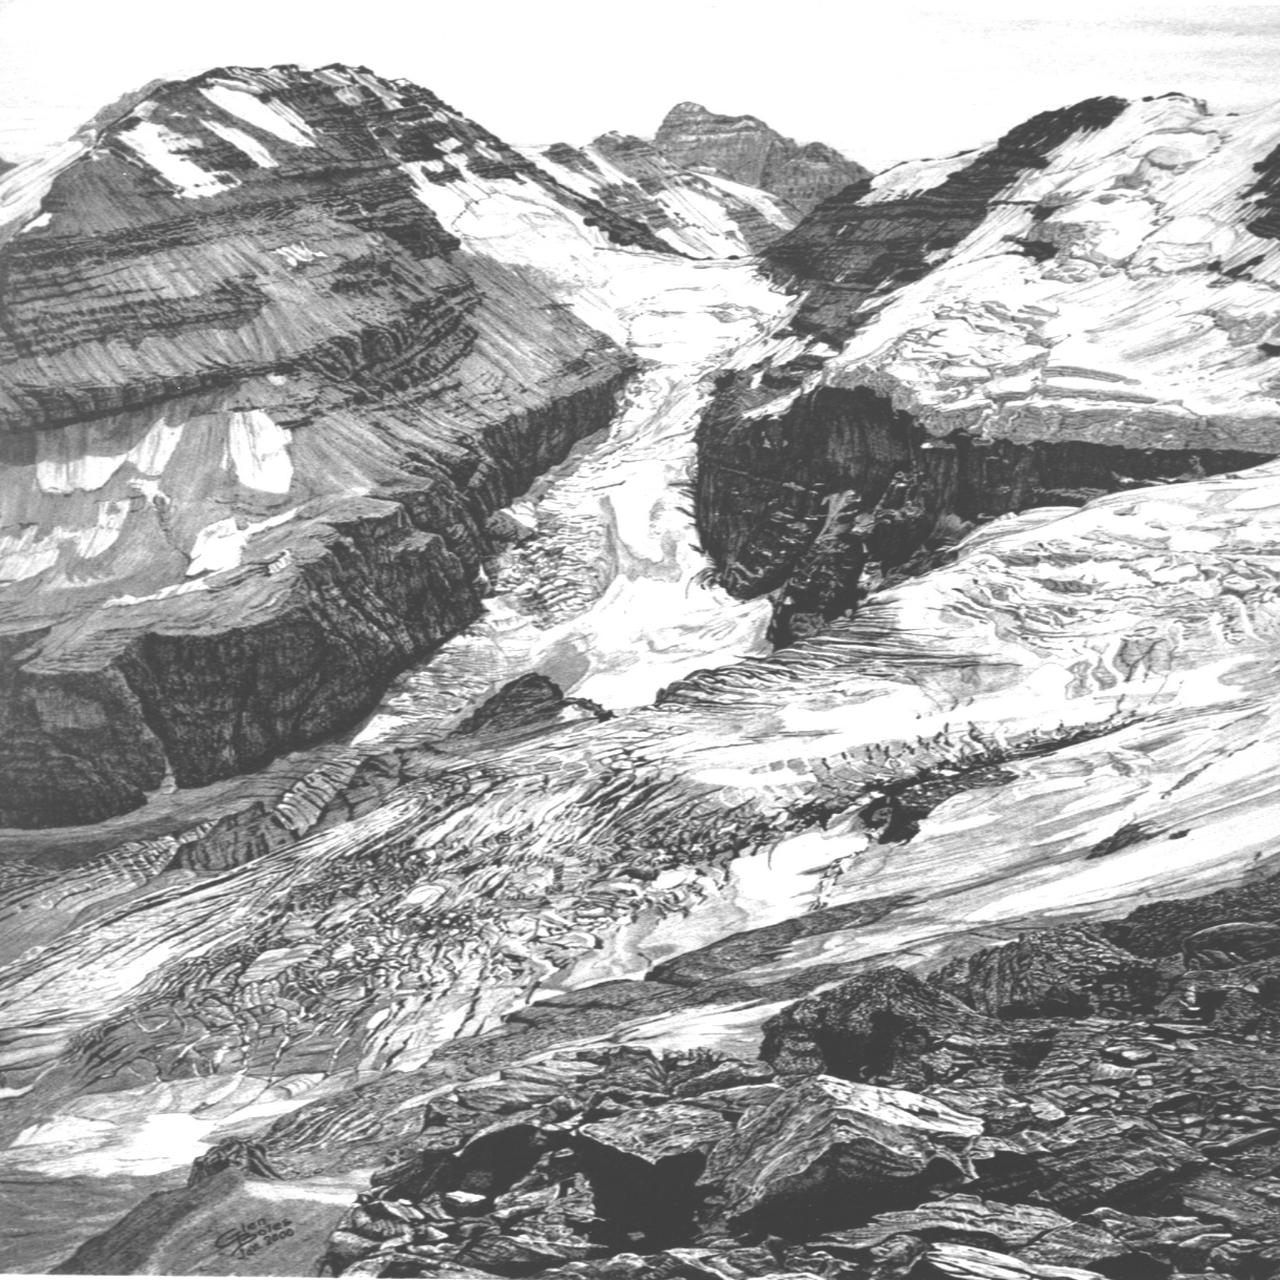 Drawing - Abbot Pass and Victoria Glacier